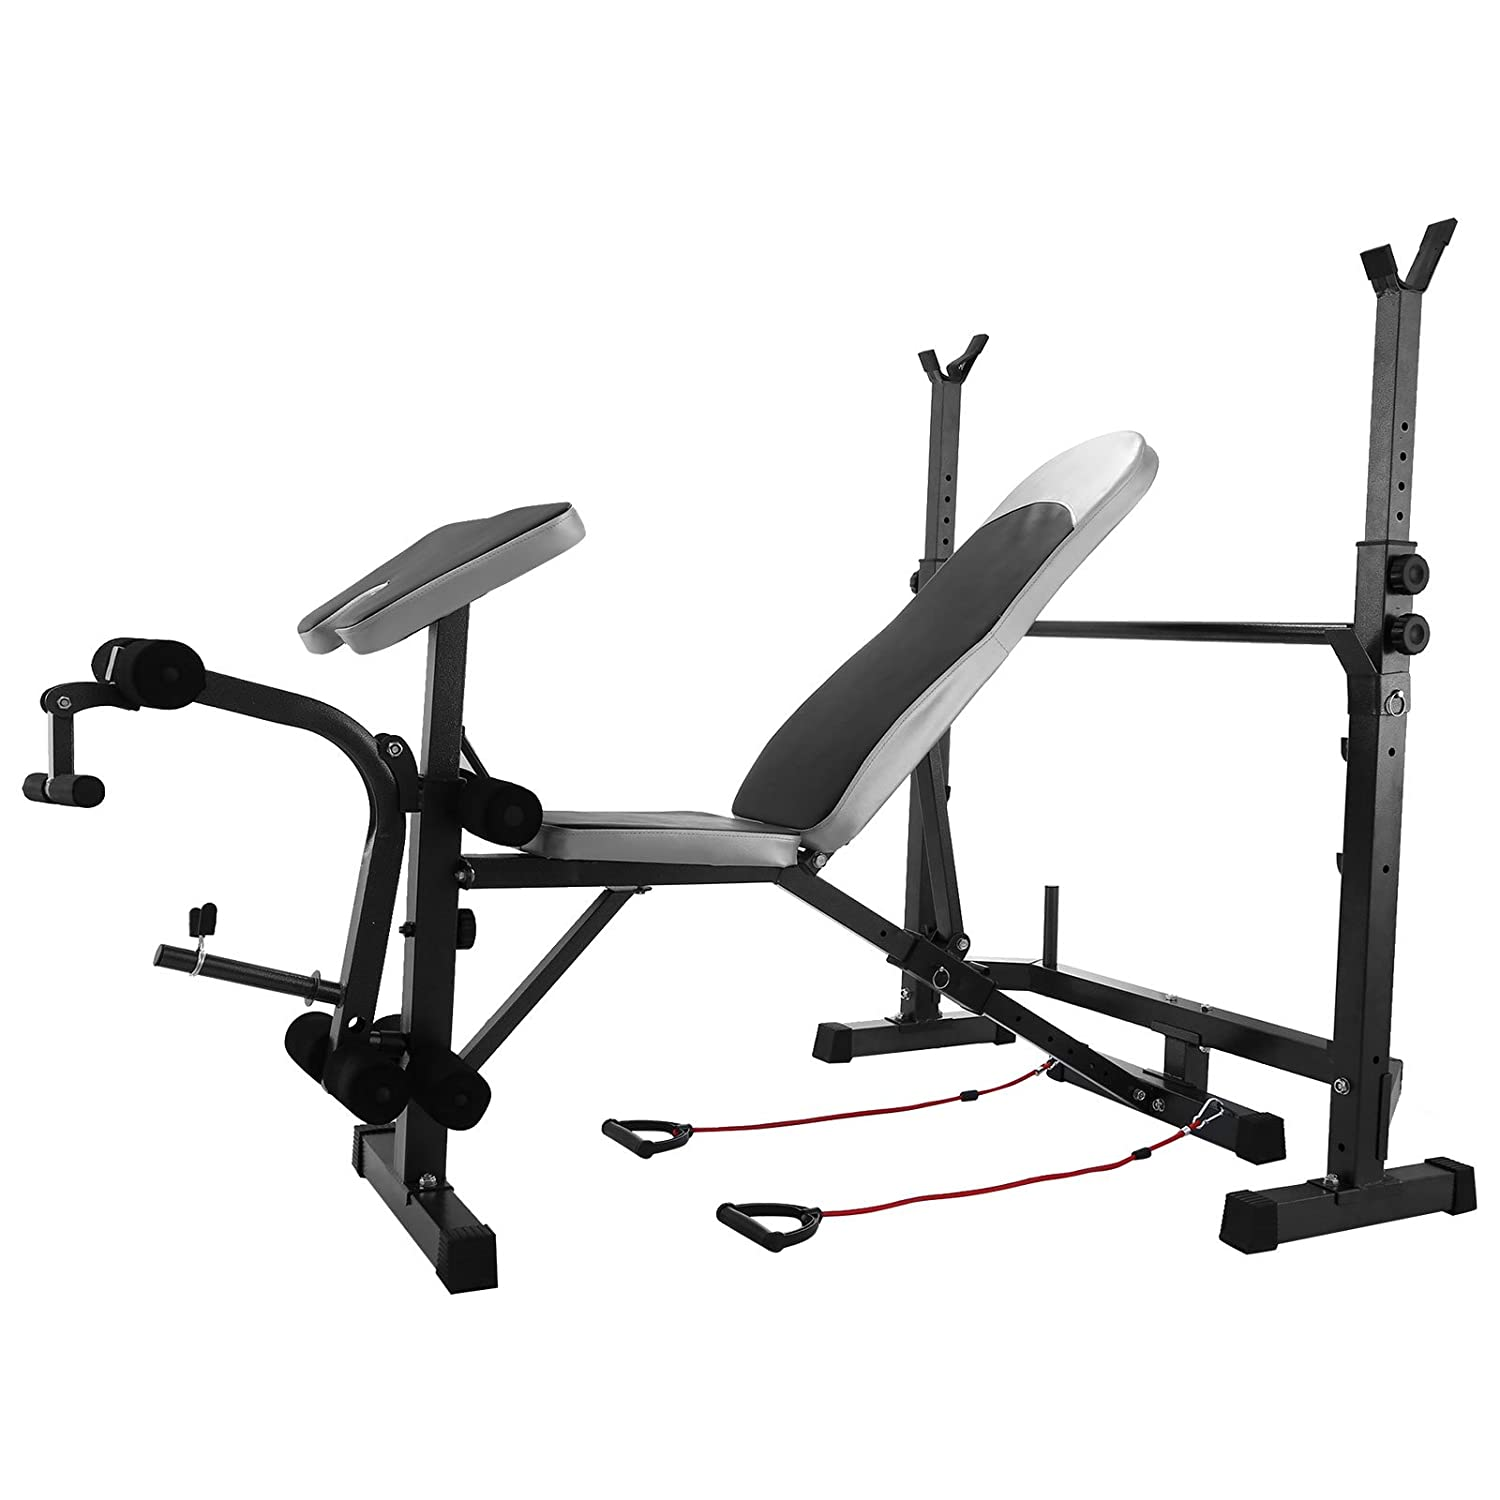 Happybuy Weight Bench 660LBS Weight Lifting Bench Weight Bench Adjustable Exercise Bench for Indoor Use Weight Bench Set with Leg Developer Workout Bench Split Type